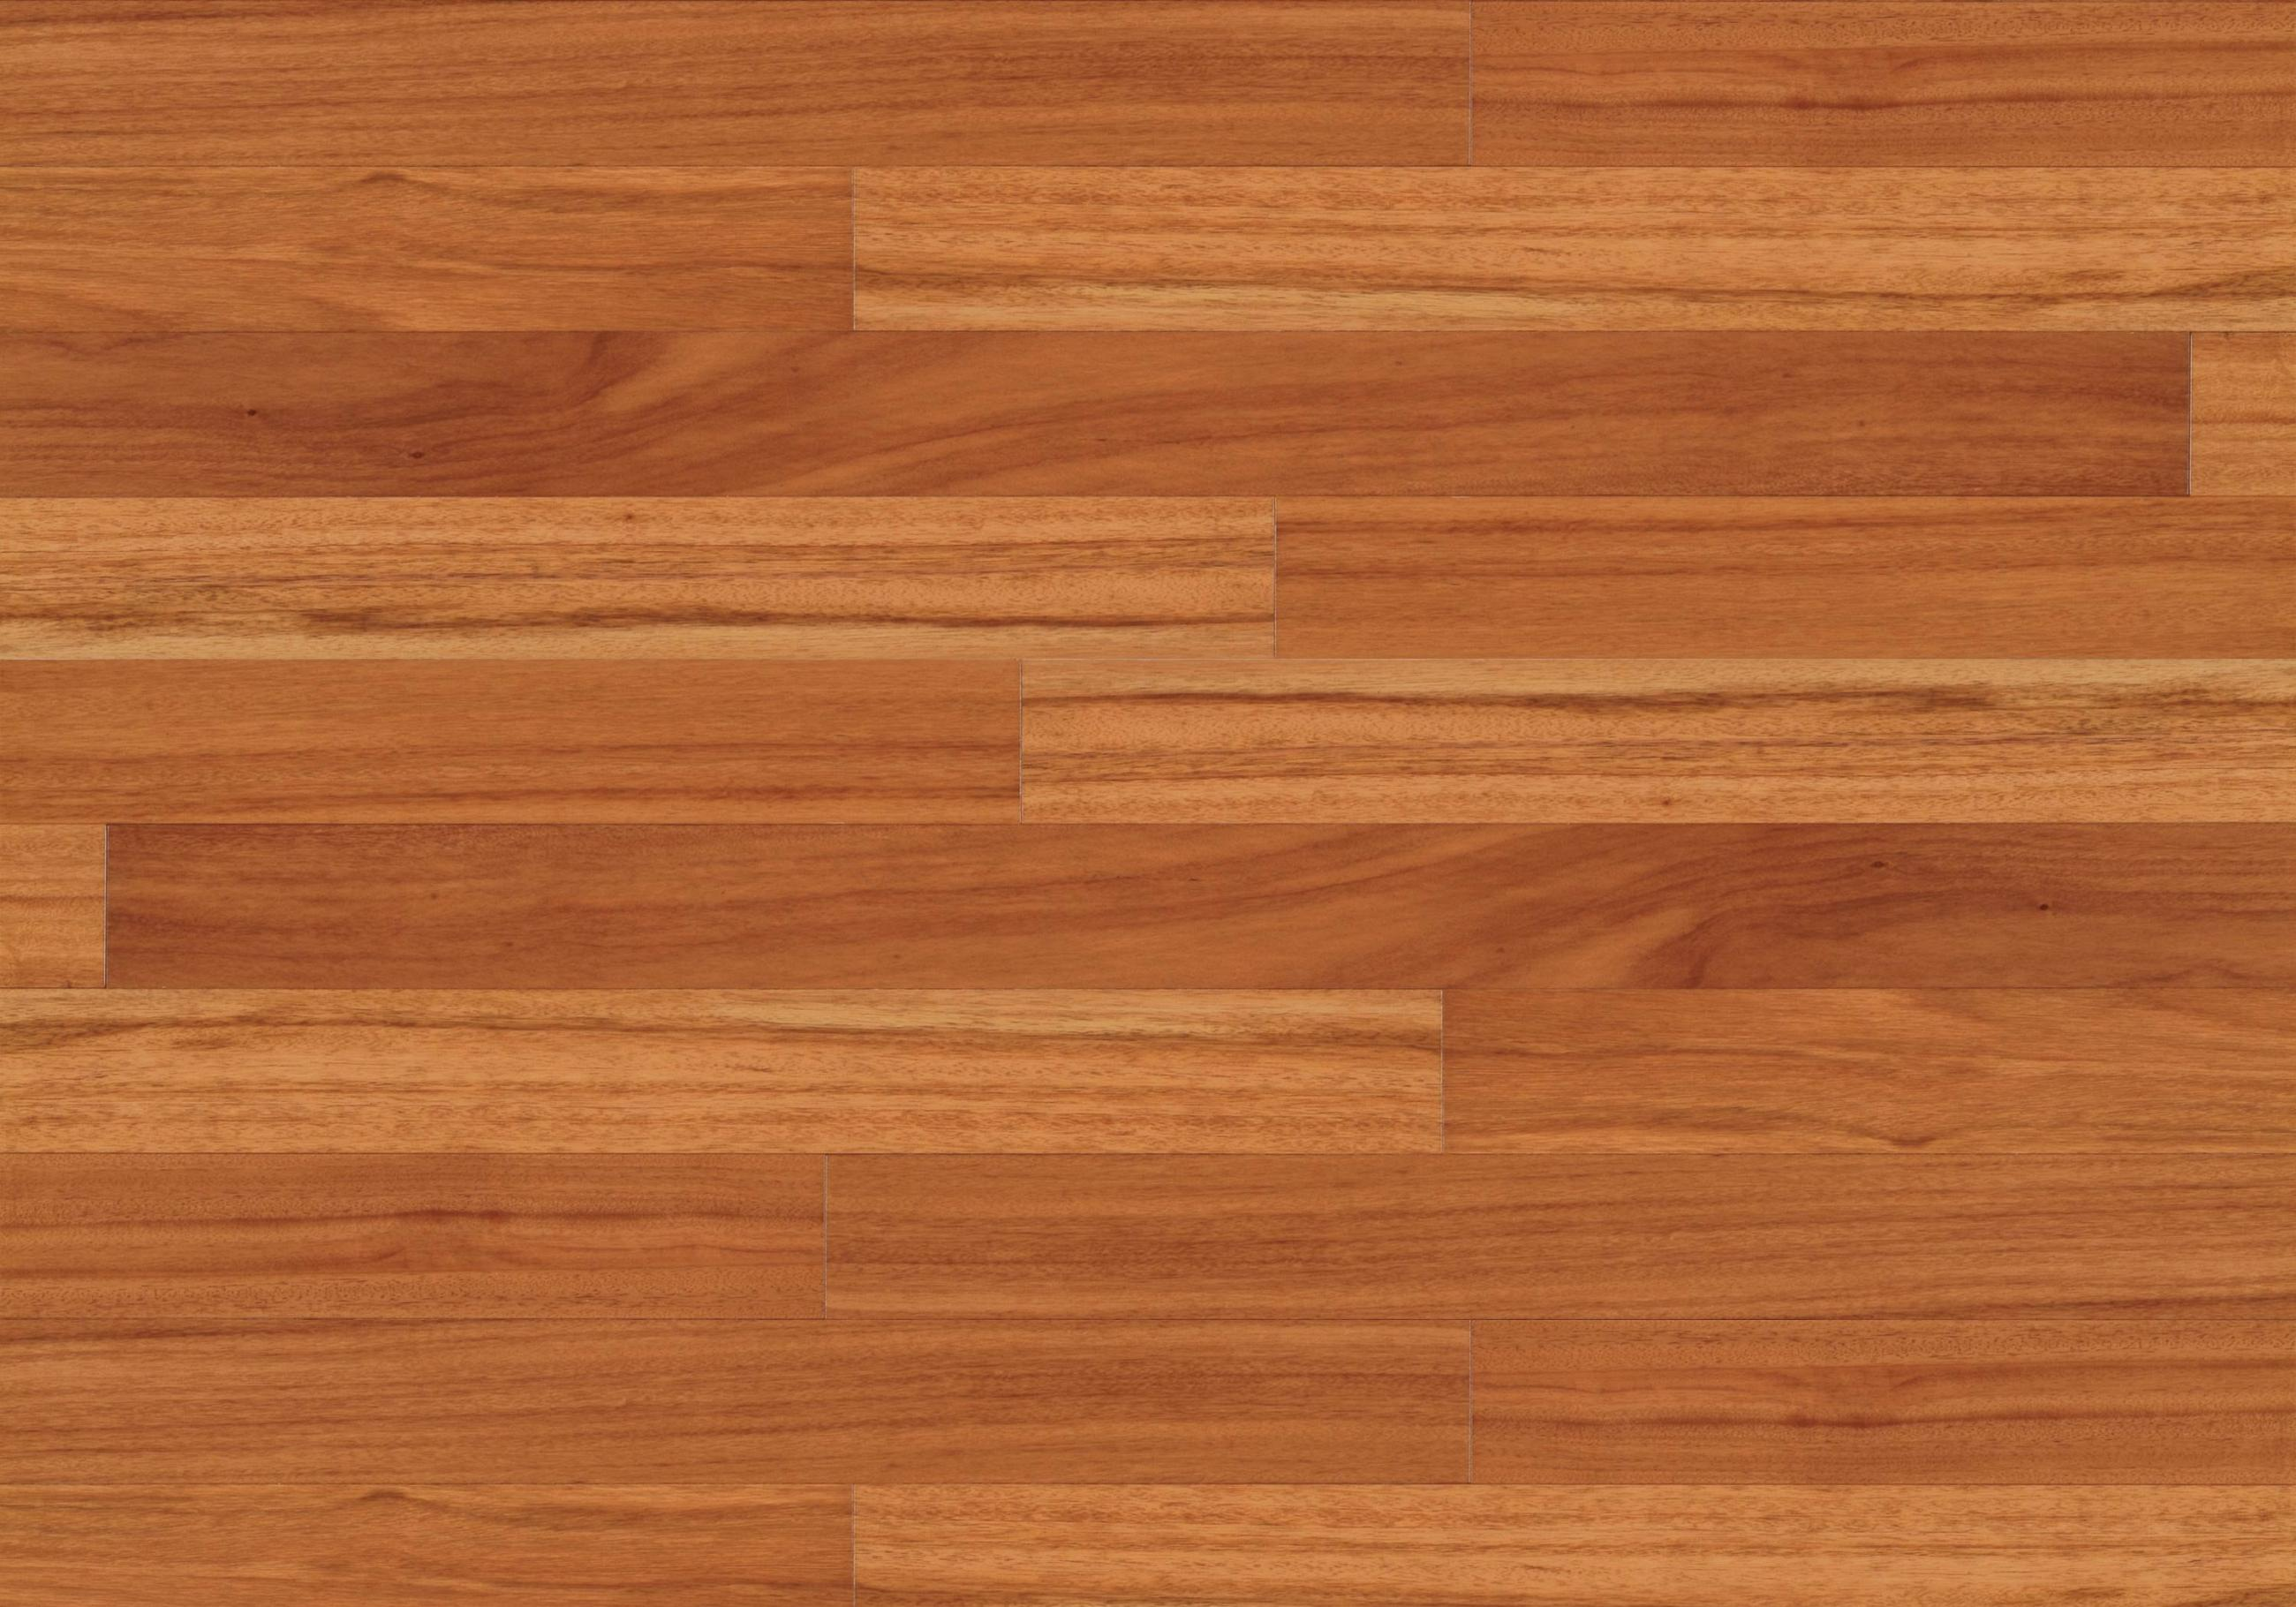 Engineered Hardwood Flooring Specialty Store In Anaheim CA